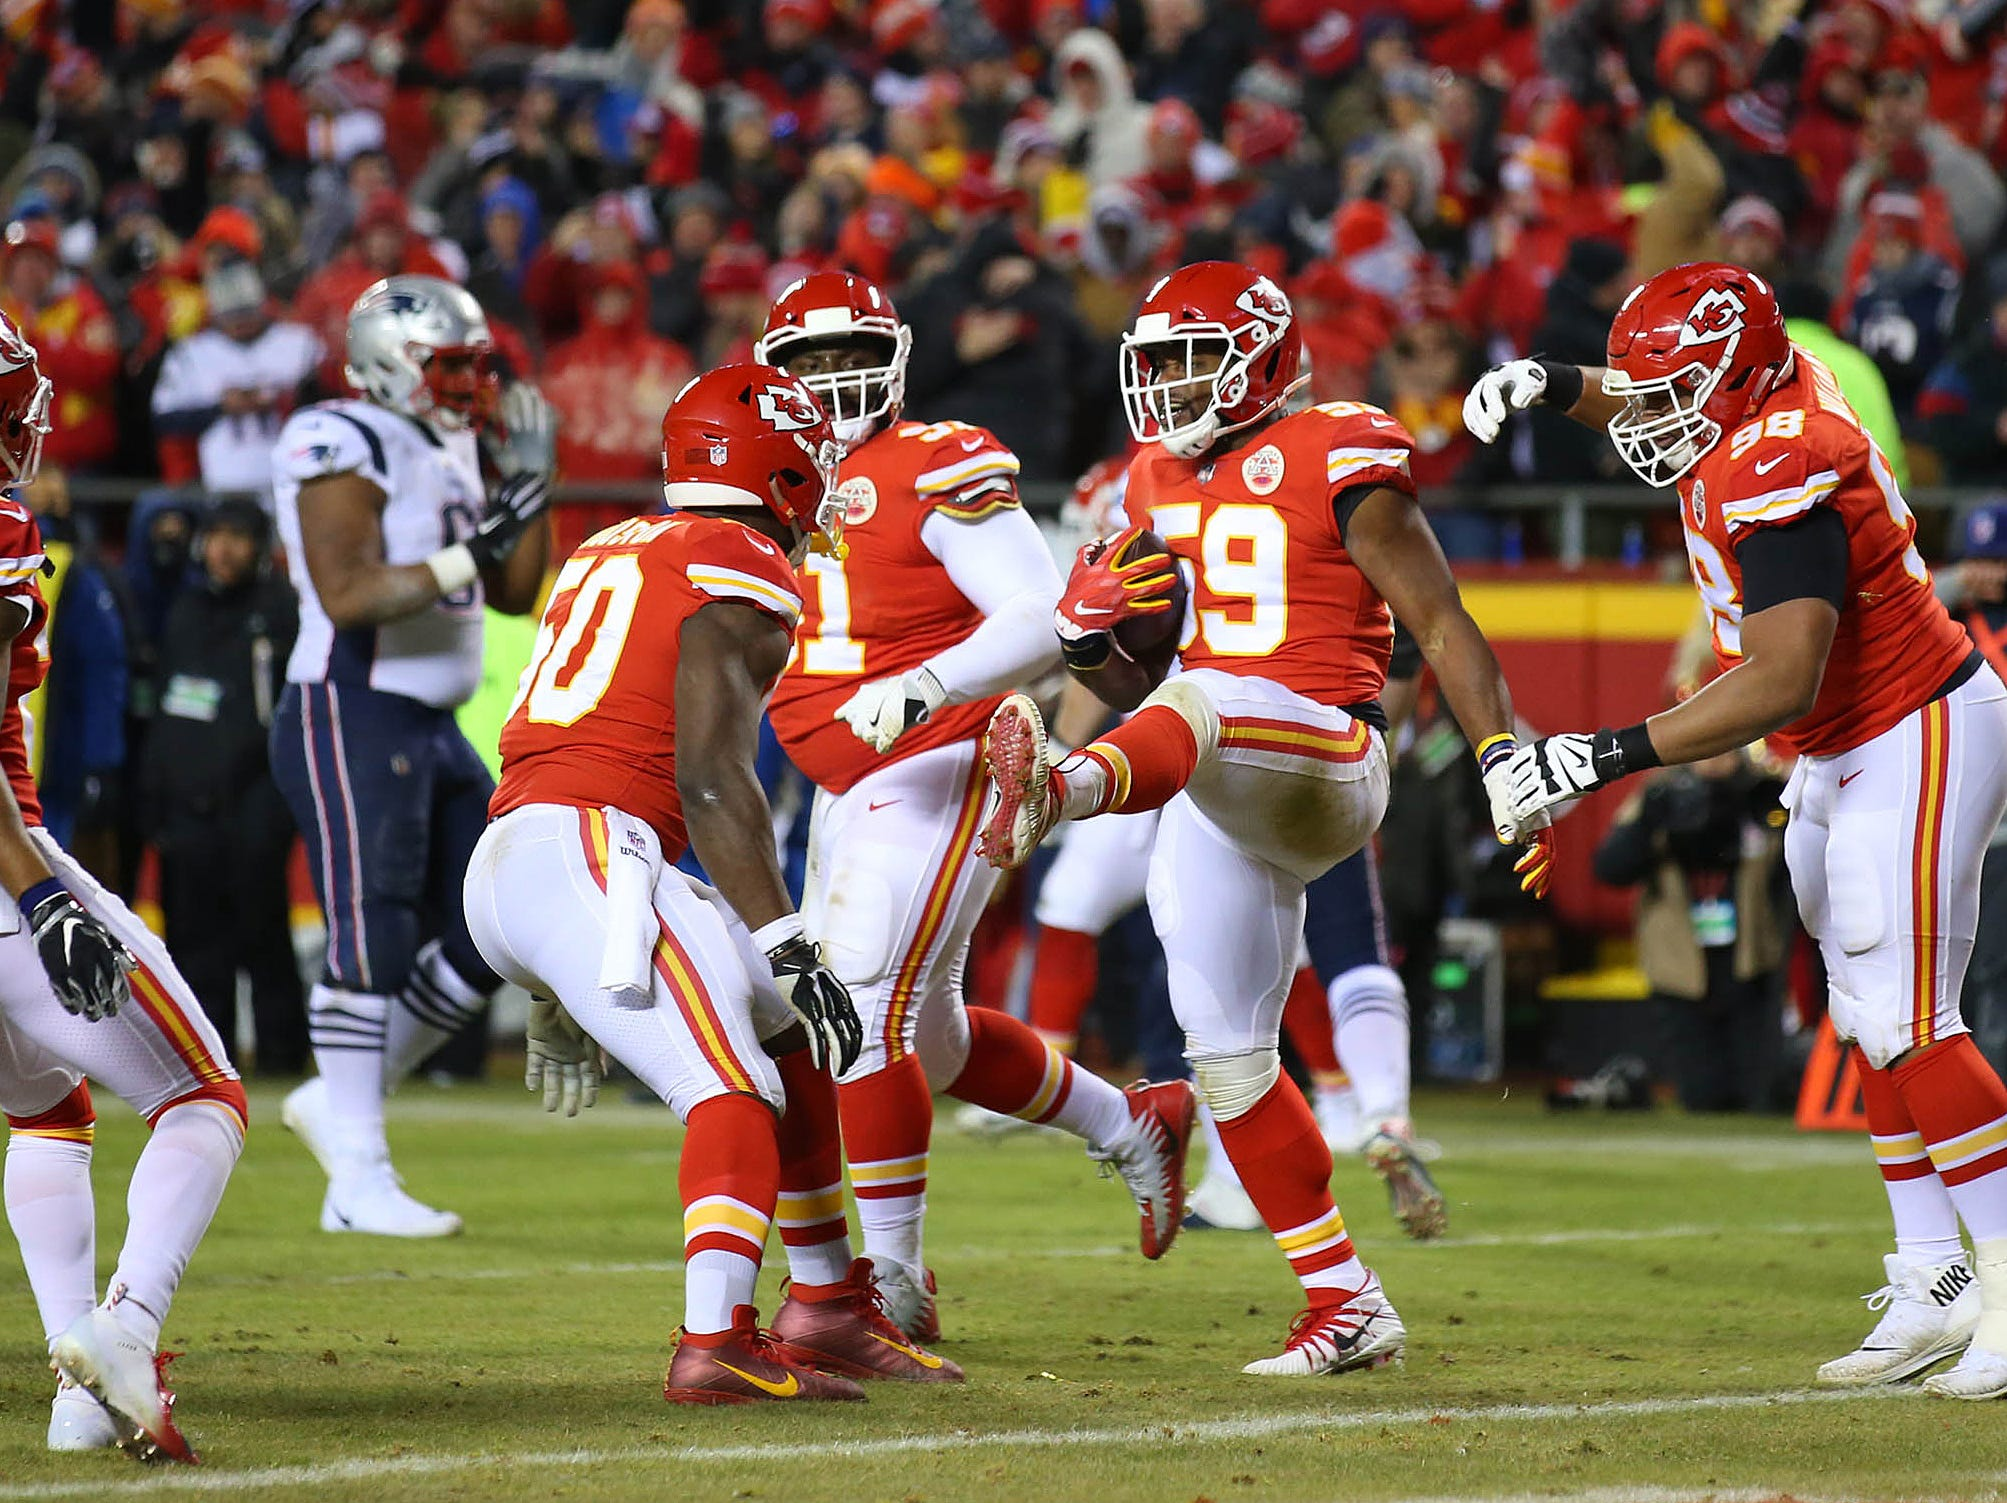 Kansas City Chiefs inside linebacker Reggie Ragland (59) celebrates with teammates after intercepting a pass against the New England Patriots.